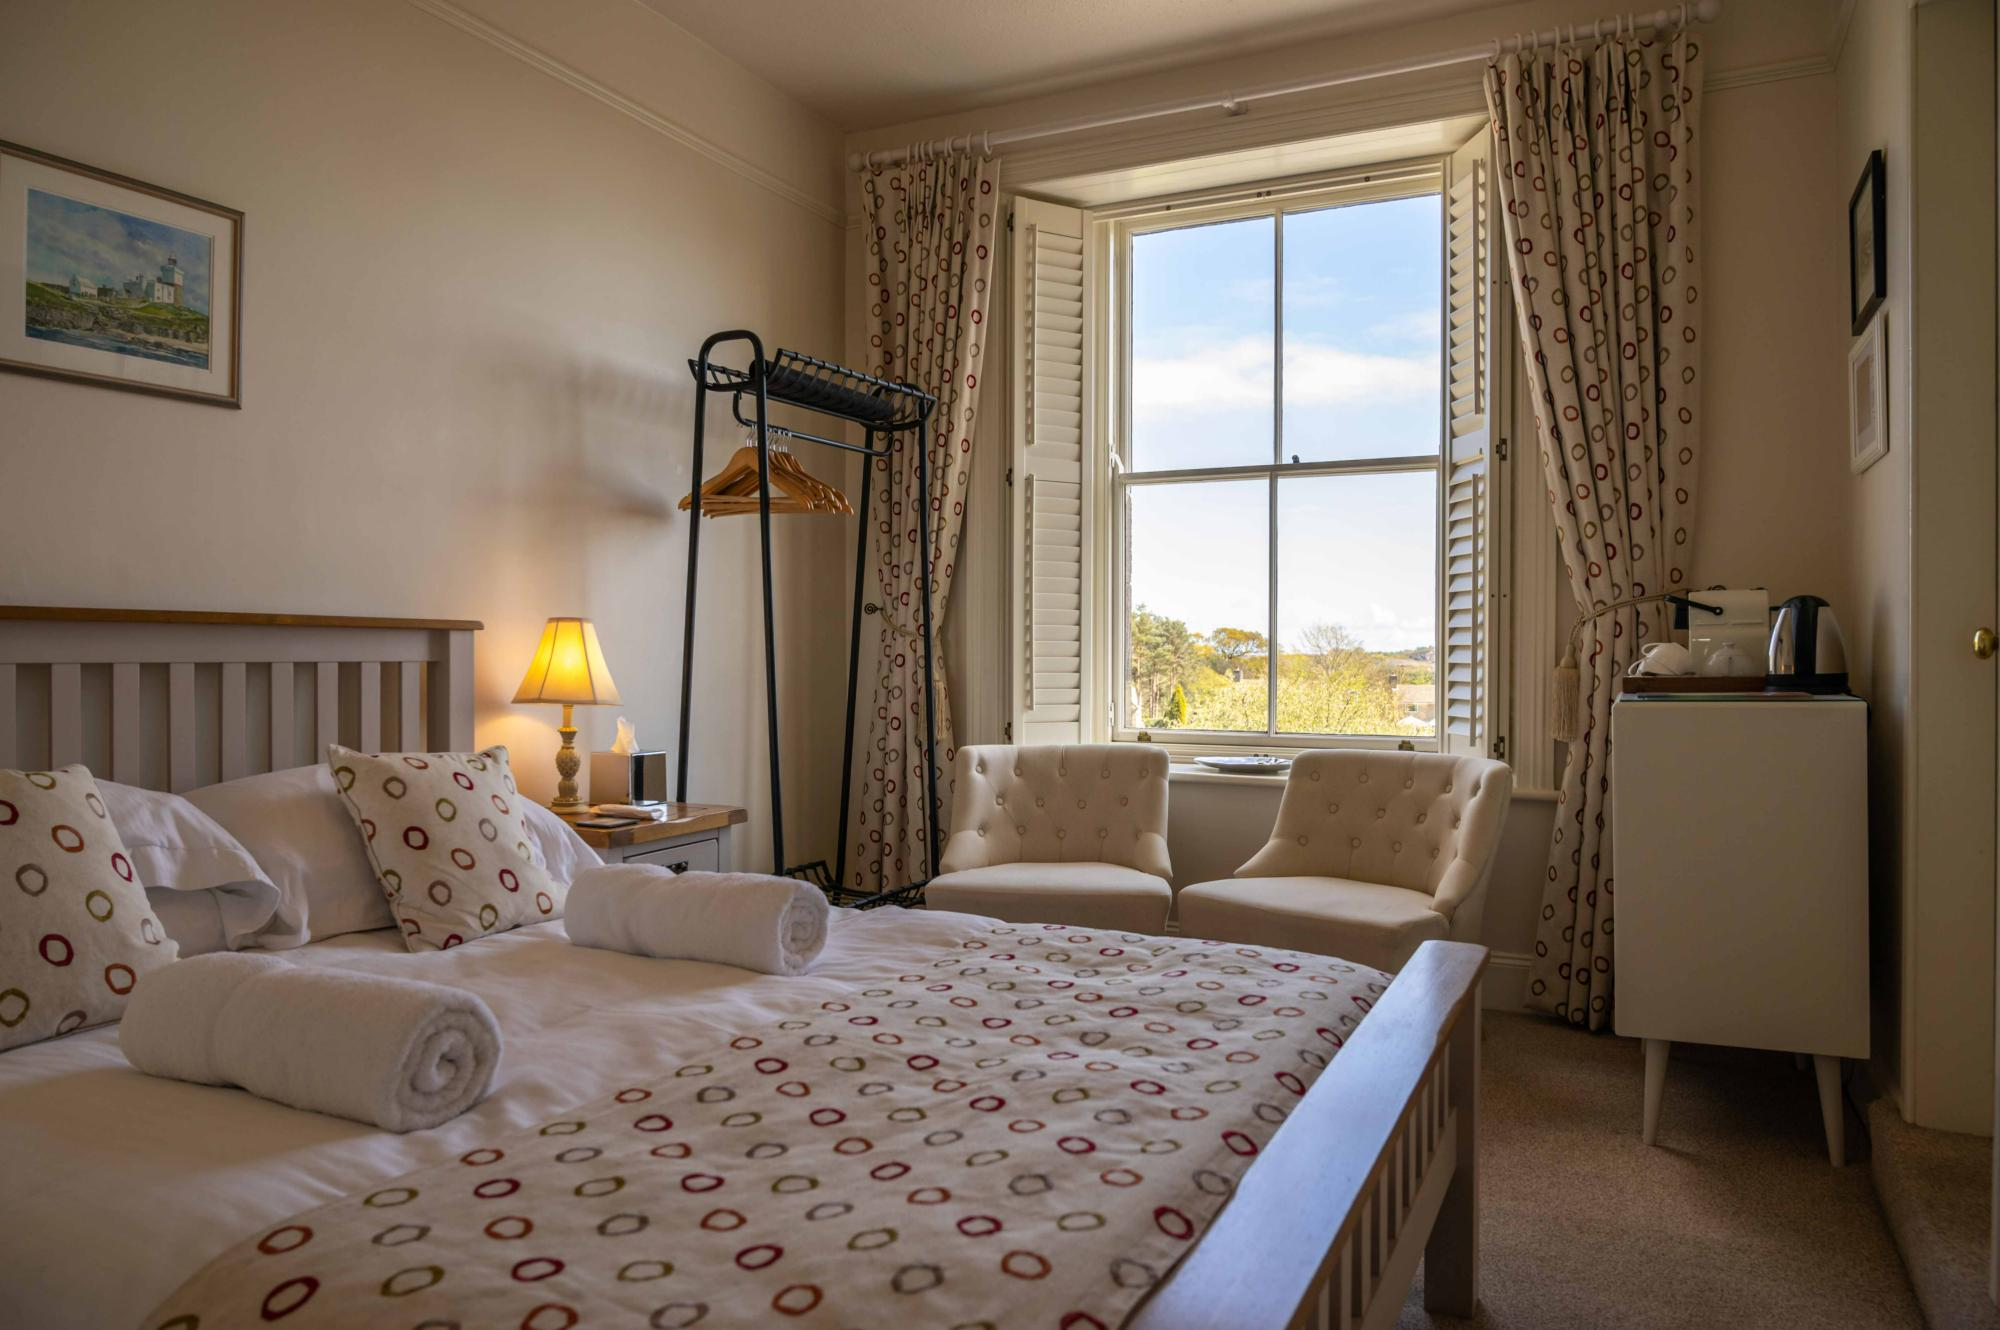 B&Bs in North East England holidays at Cool Places